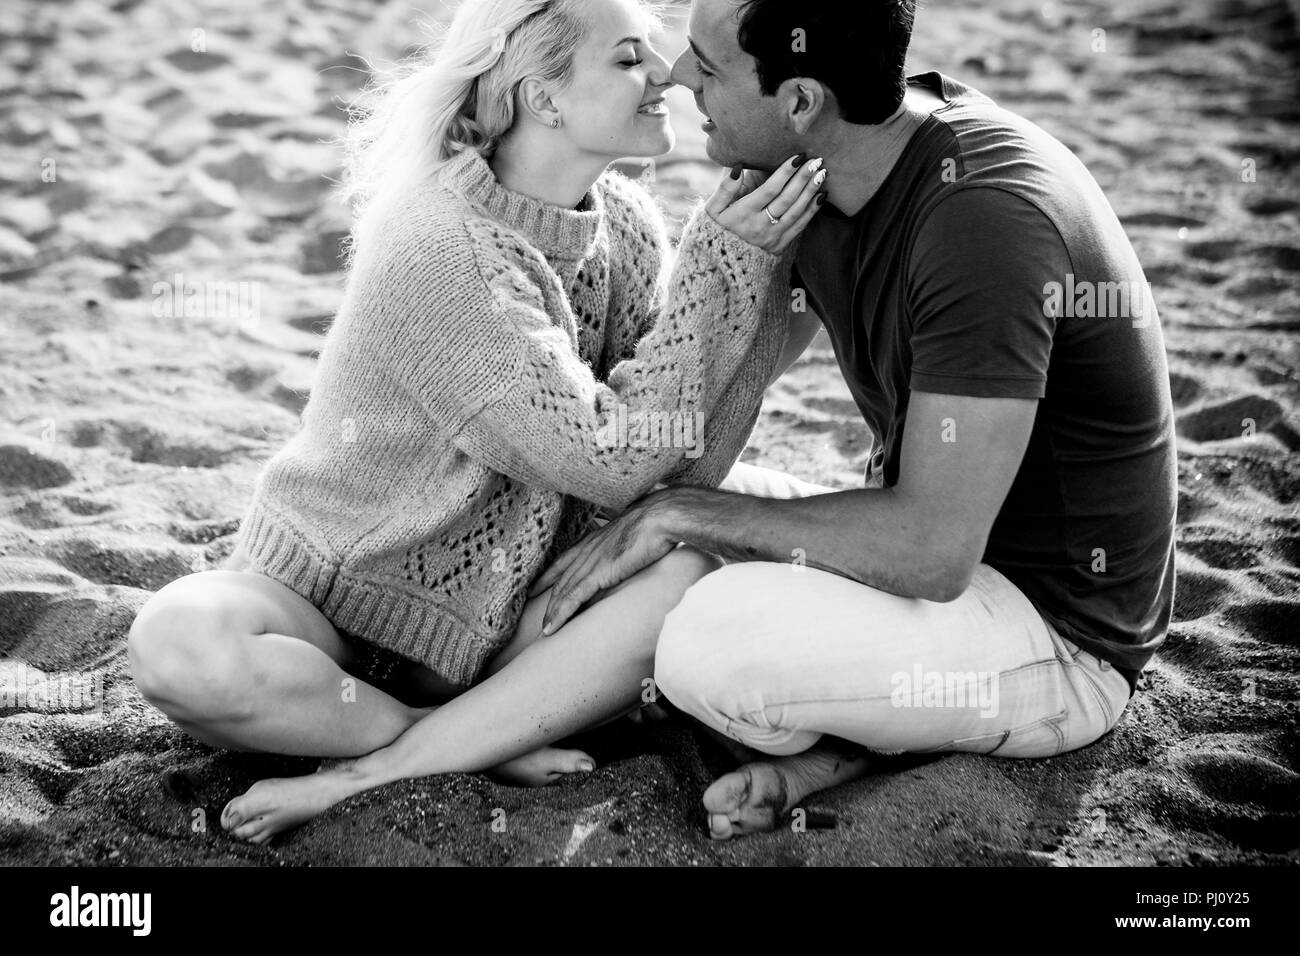 beautiful model couple caucasian young lady and man stay in love hugging and sitting on the beach. blonde and black hair in relationship outdoor leisu - Stock Image